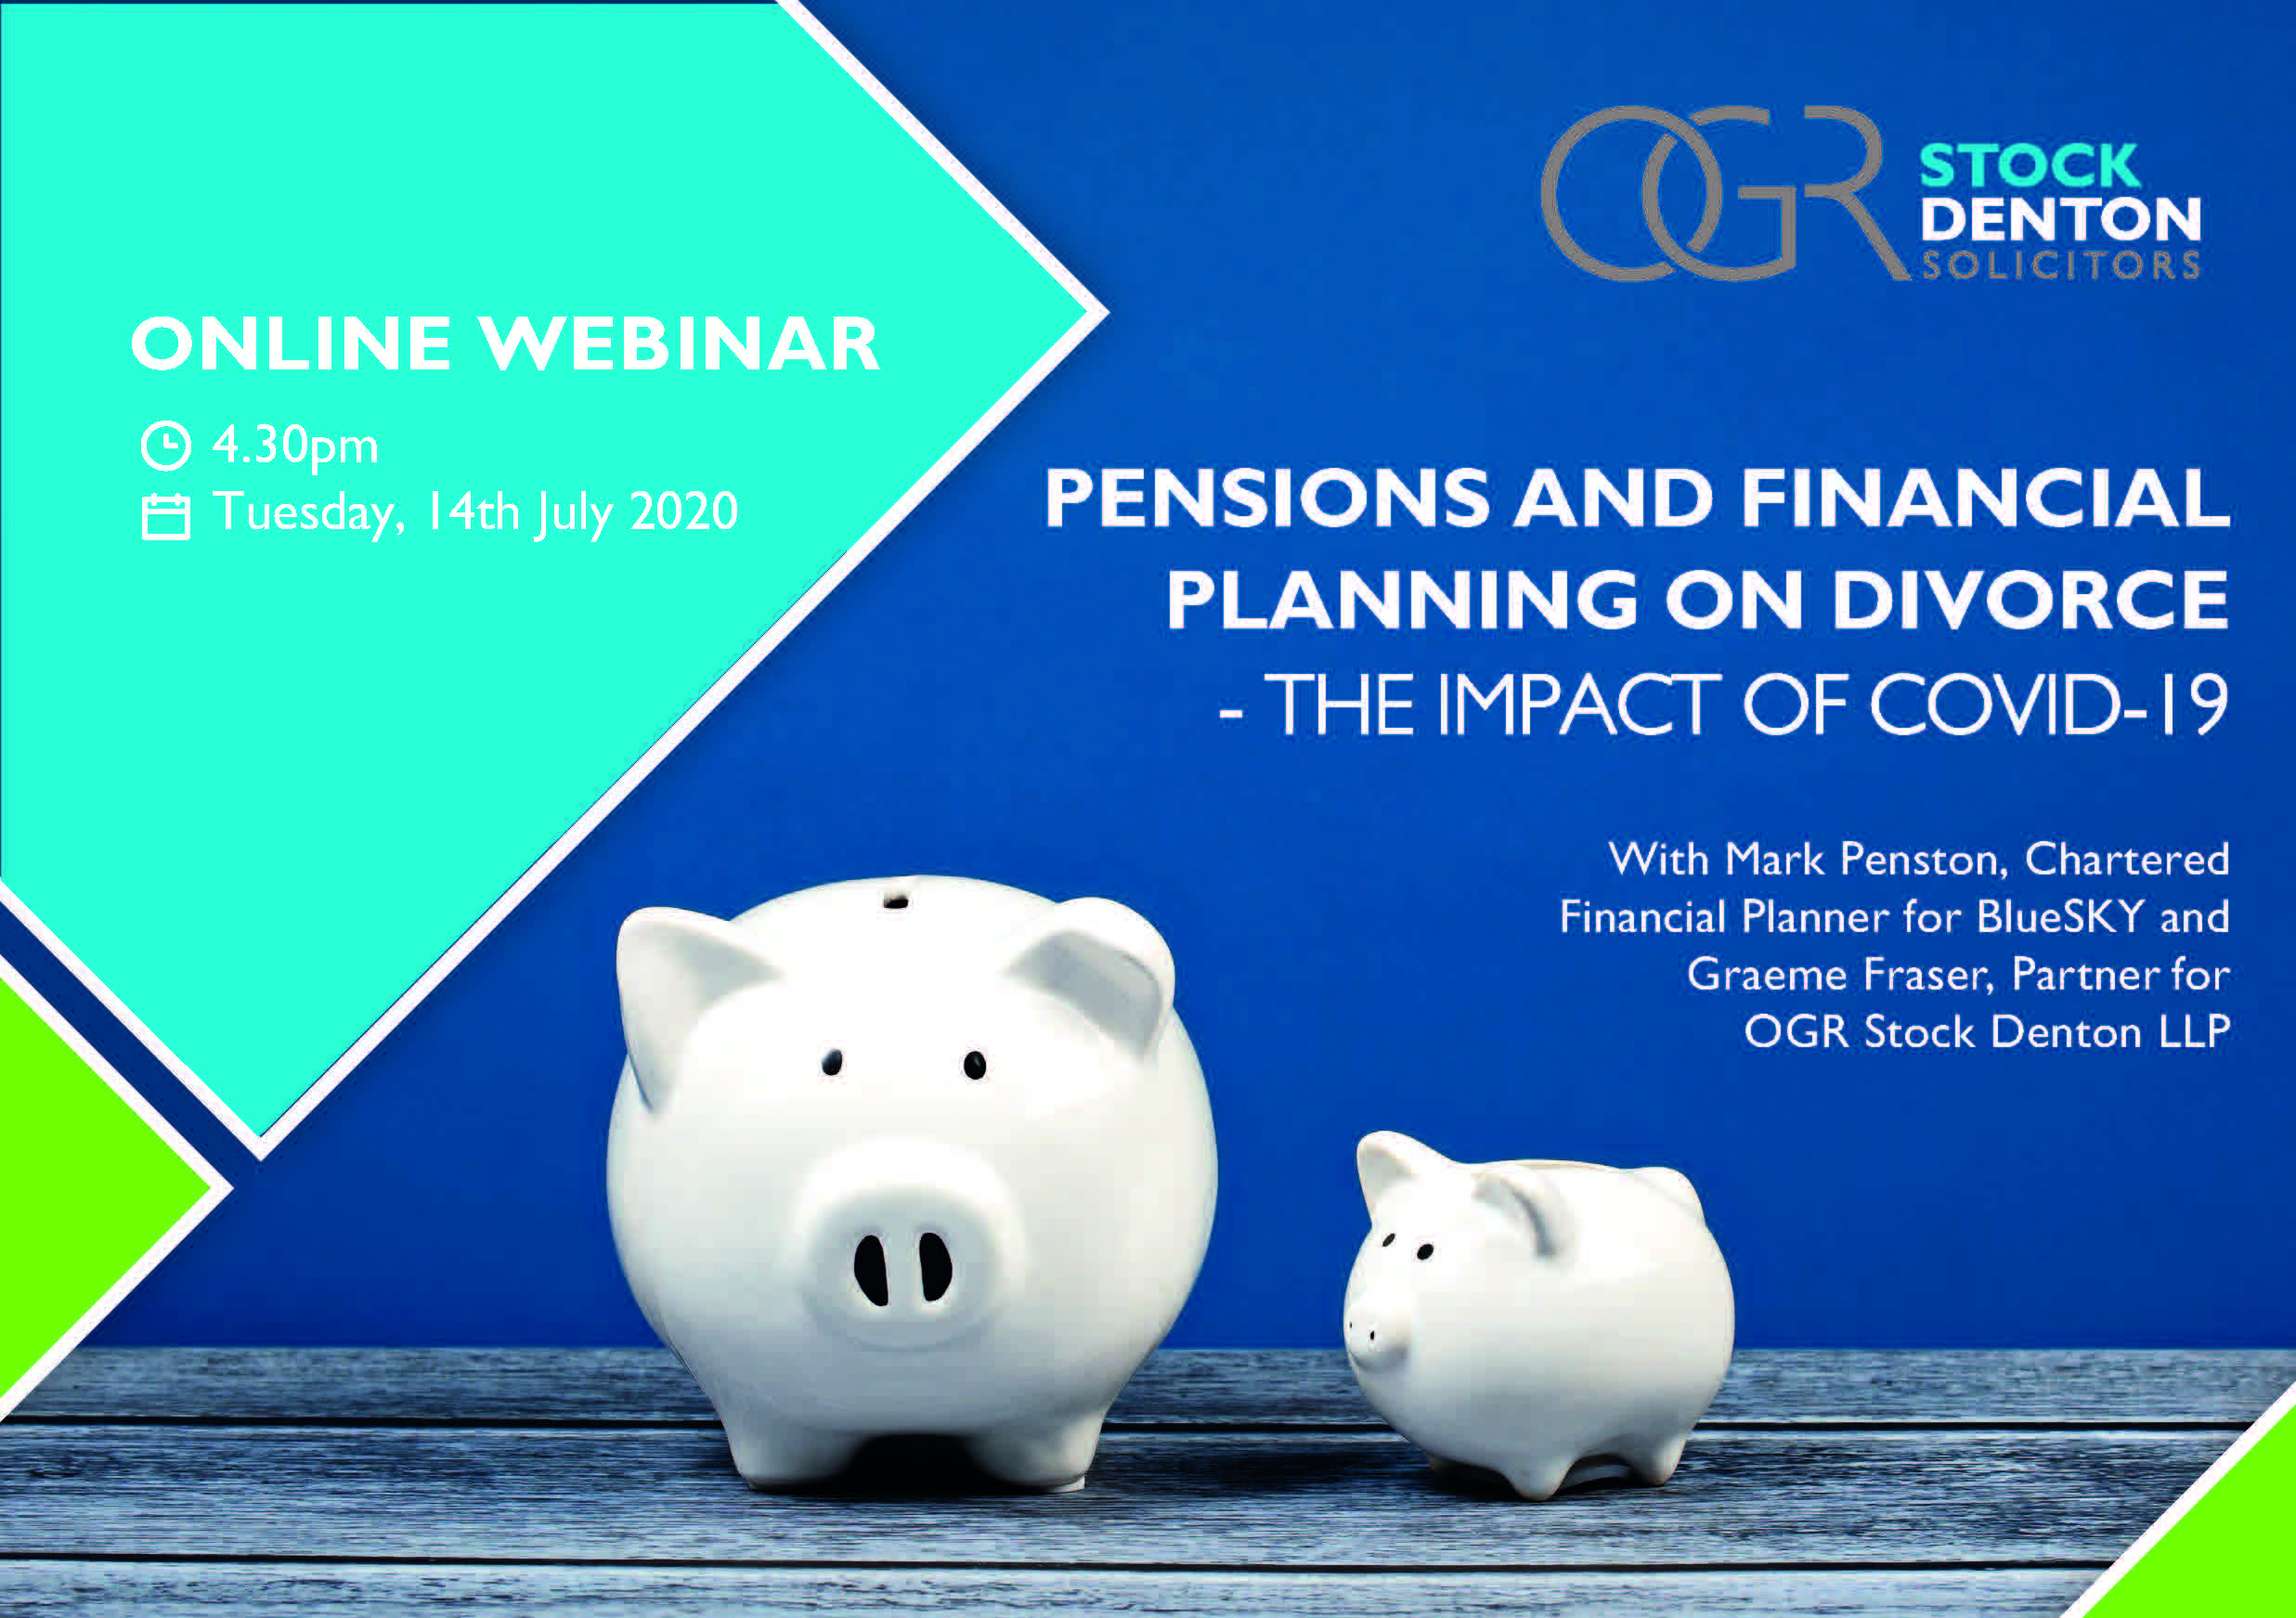 Pensions and financial planning on divorce – the impact of COVID-19